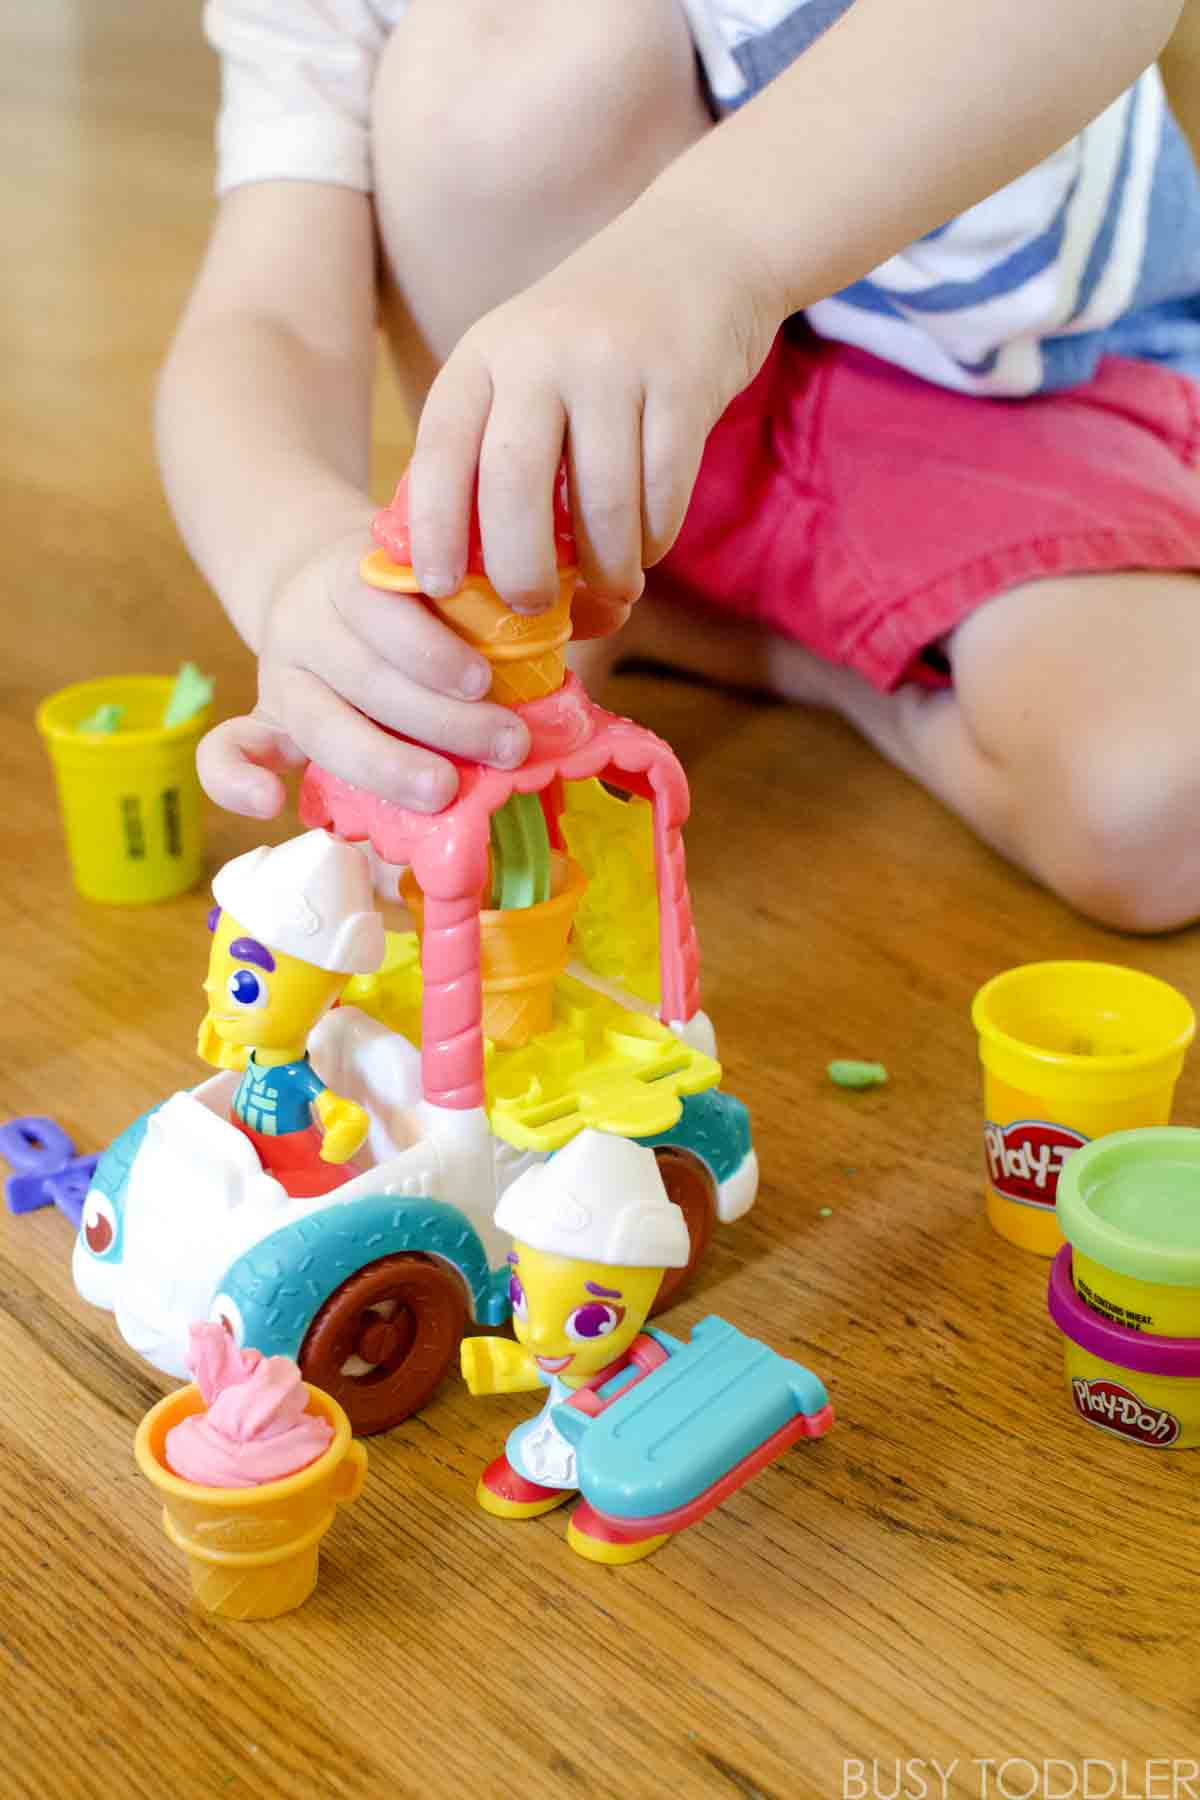 PLAY-DOH TOWN: Get creative and make memories with Play-Doh playsets